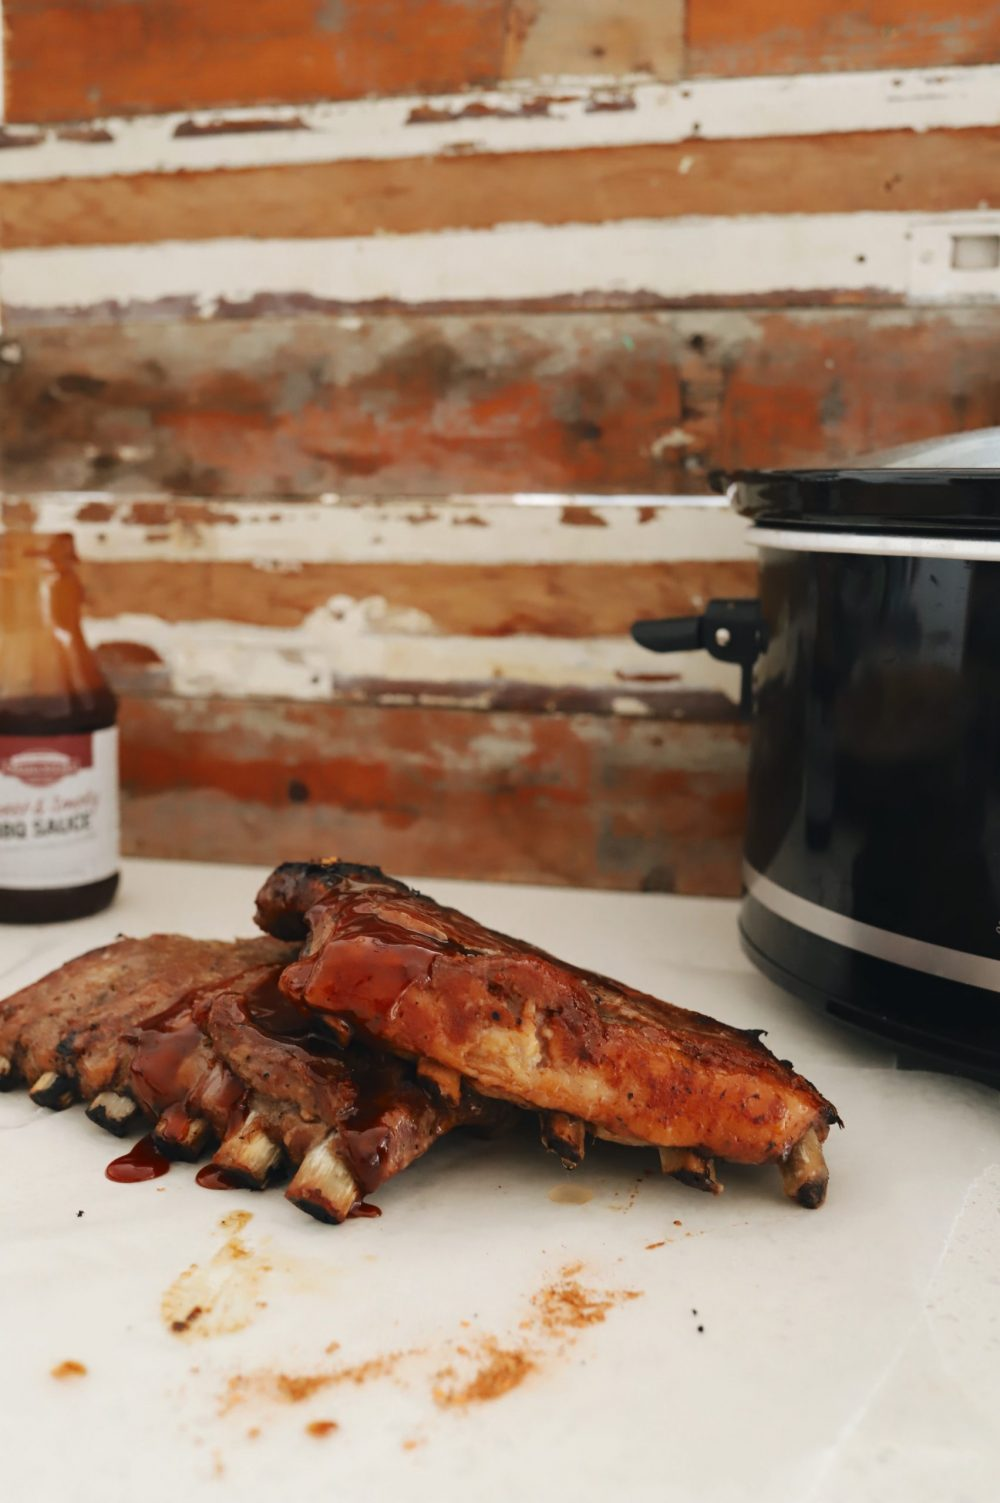 The Easiest Slow Cooker Ribs Recipe You Will Ever Make for tender fall off the bone ribs! |Slow Cooker Ribs by popular Florida lifestyle blog, Fresh Mommy Blog: image of slow cooker ribs.